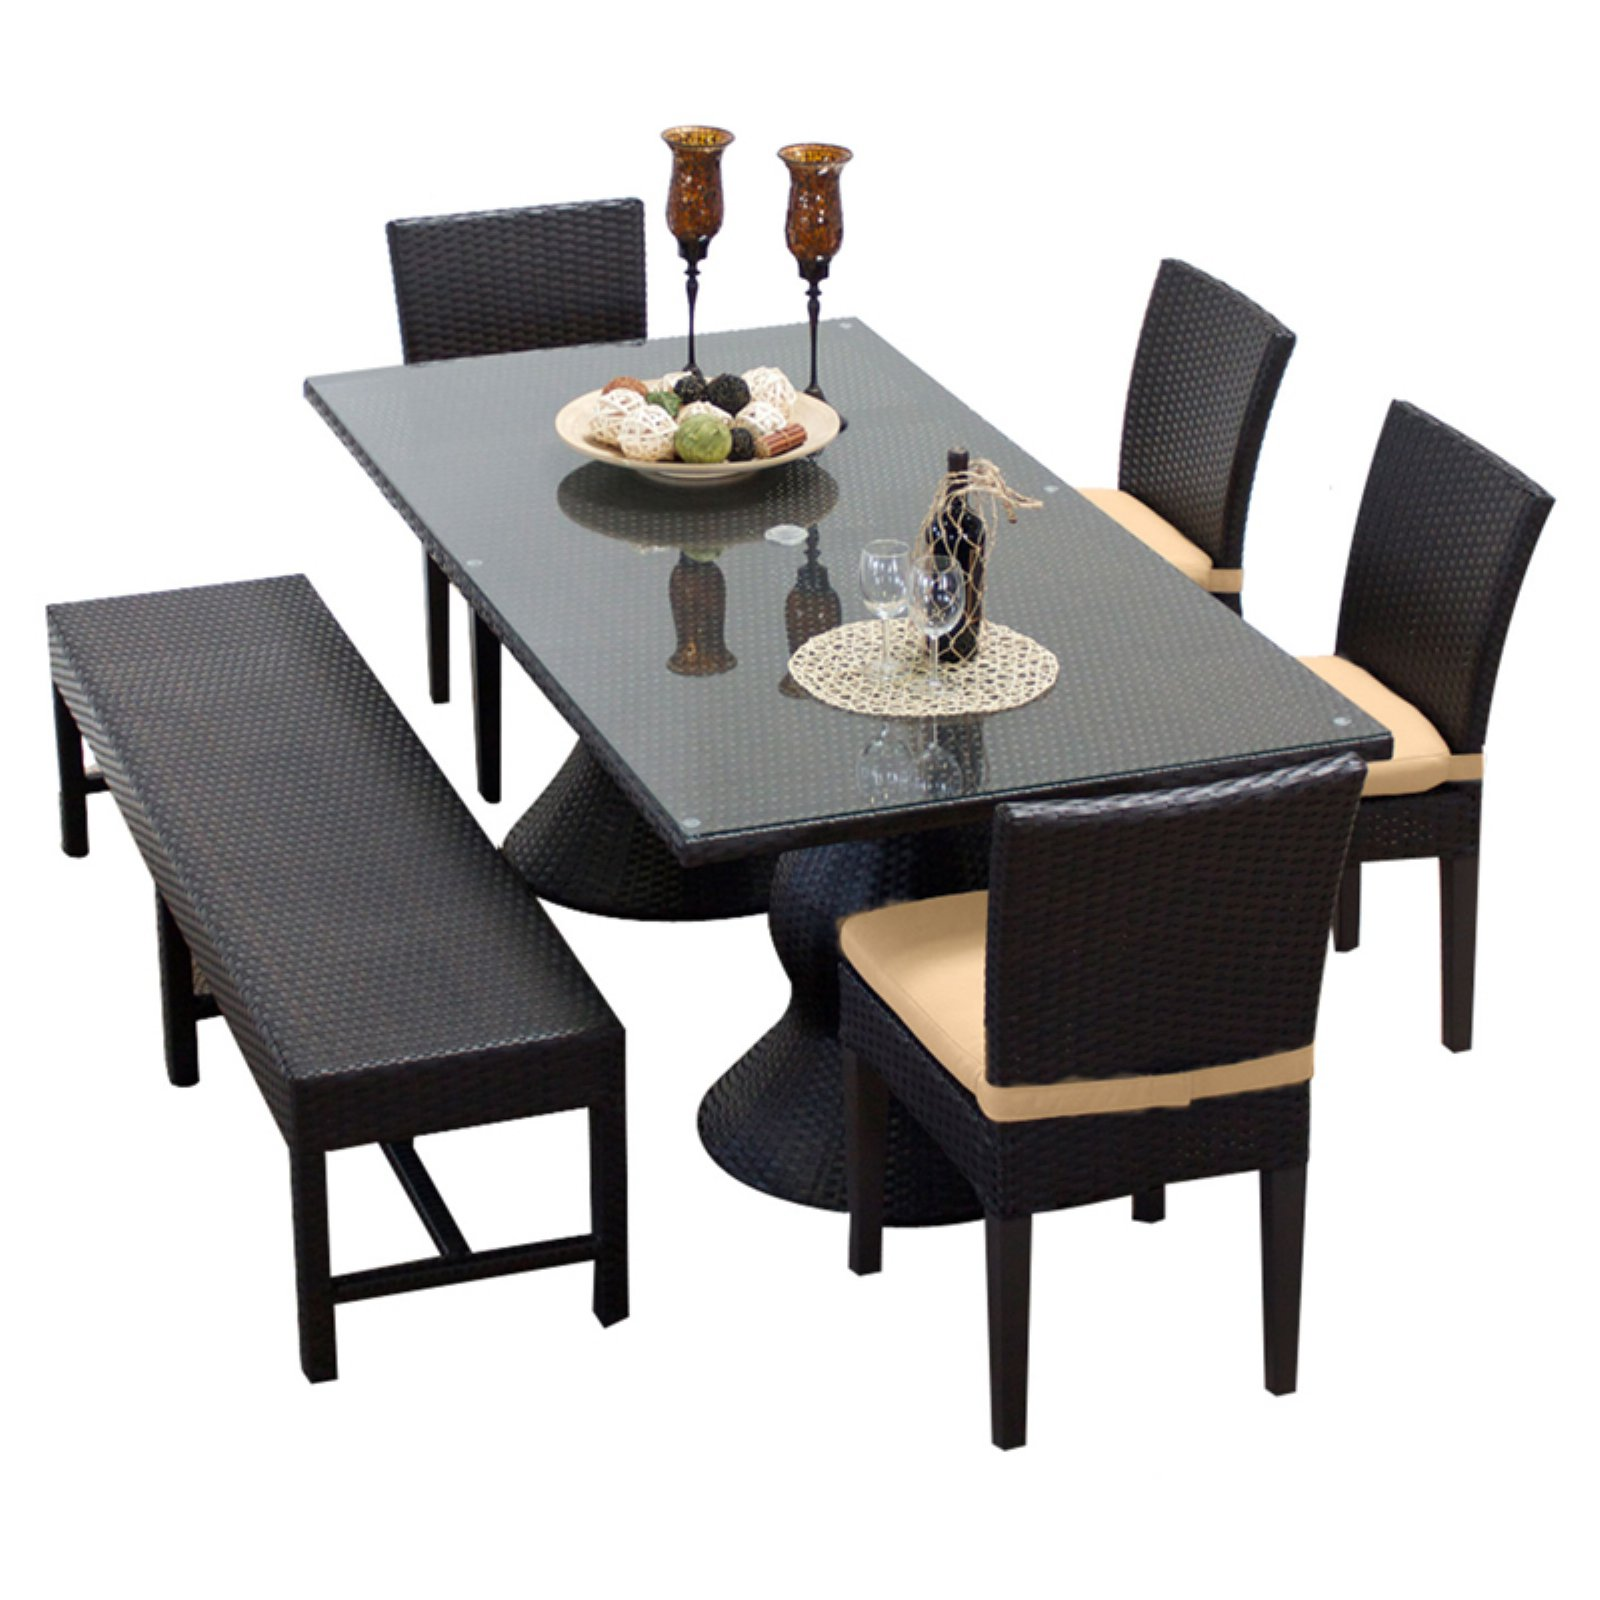 TK Classics Napa Wicker 6 Piece Rectangular Patio Dining Set with Dinning Chair and 8 Cushion Covers